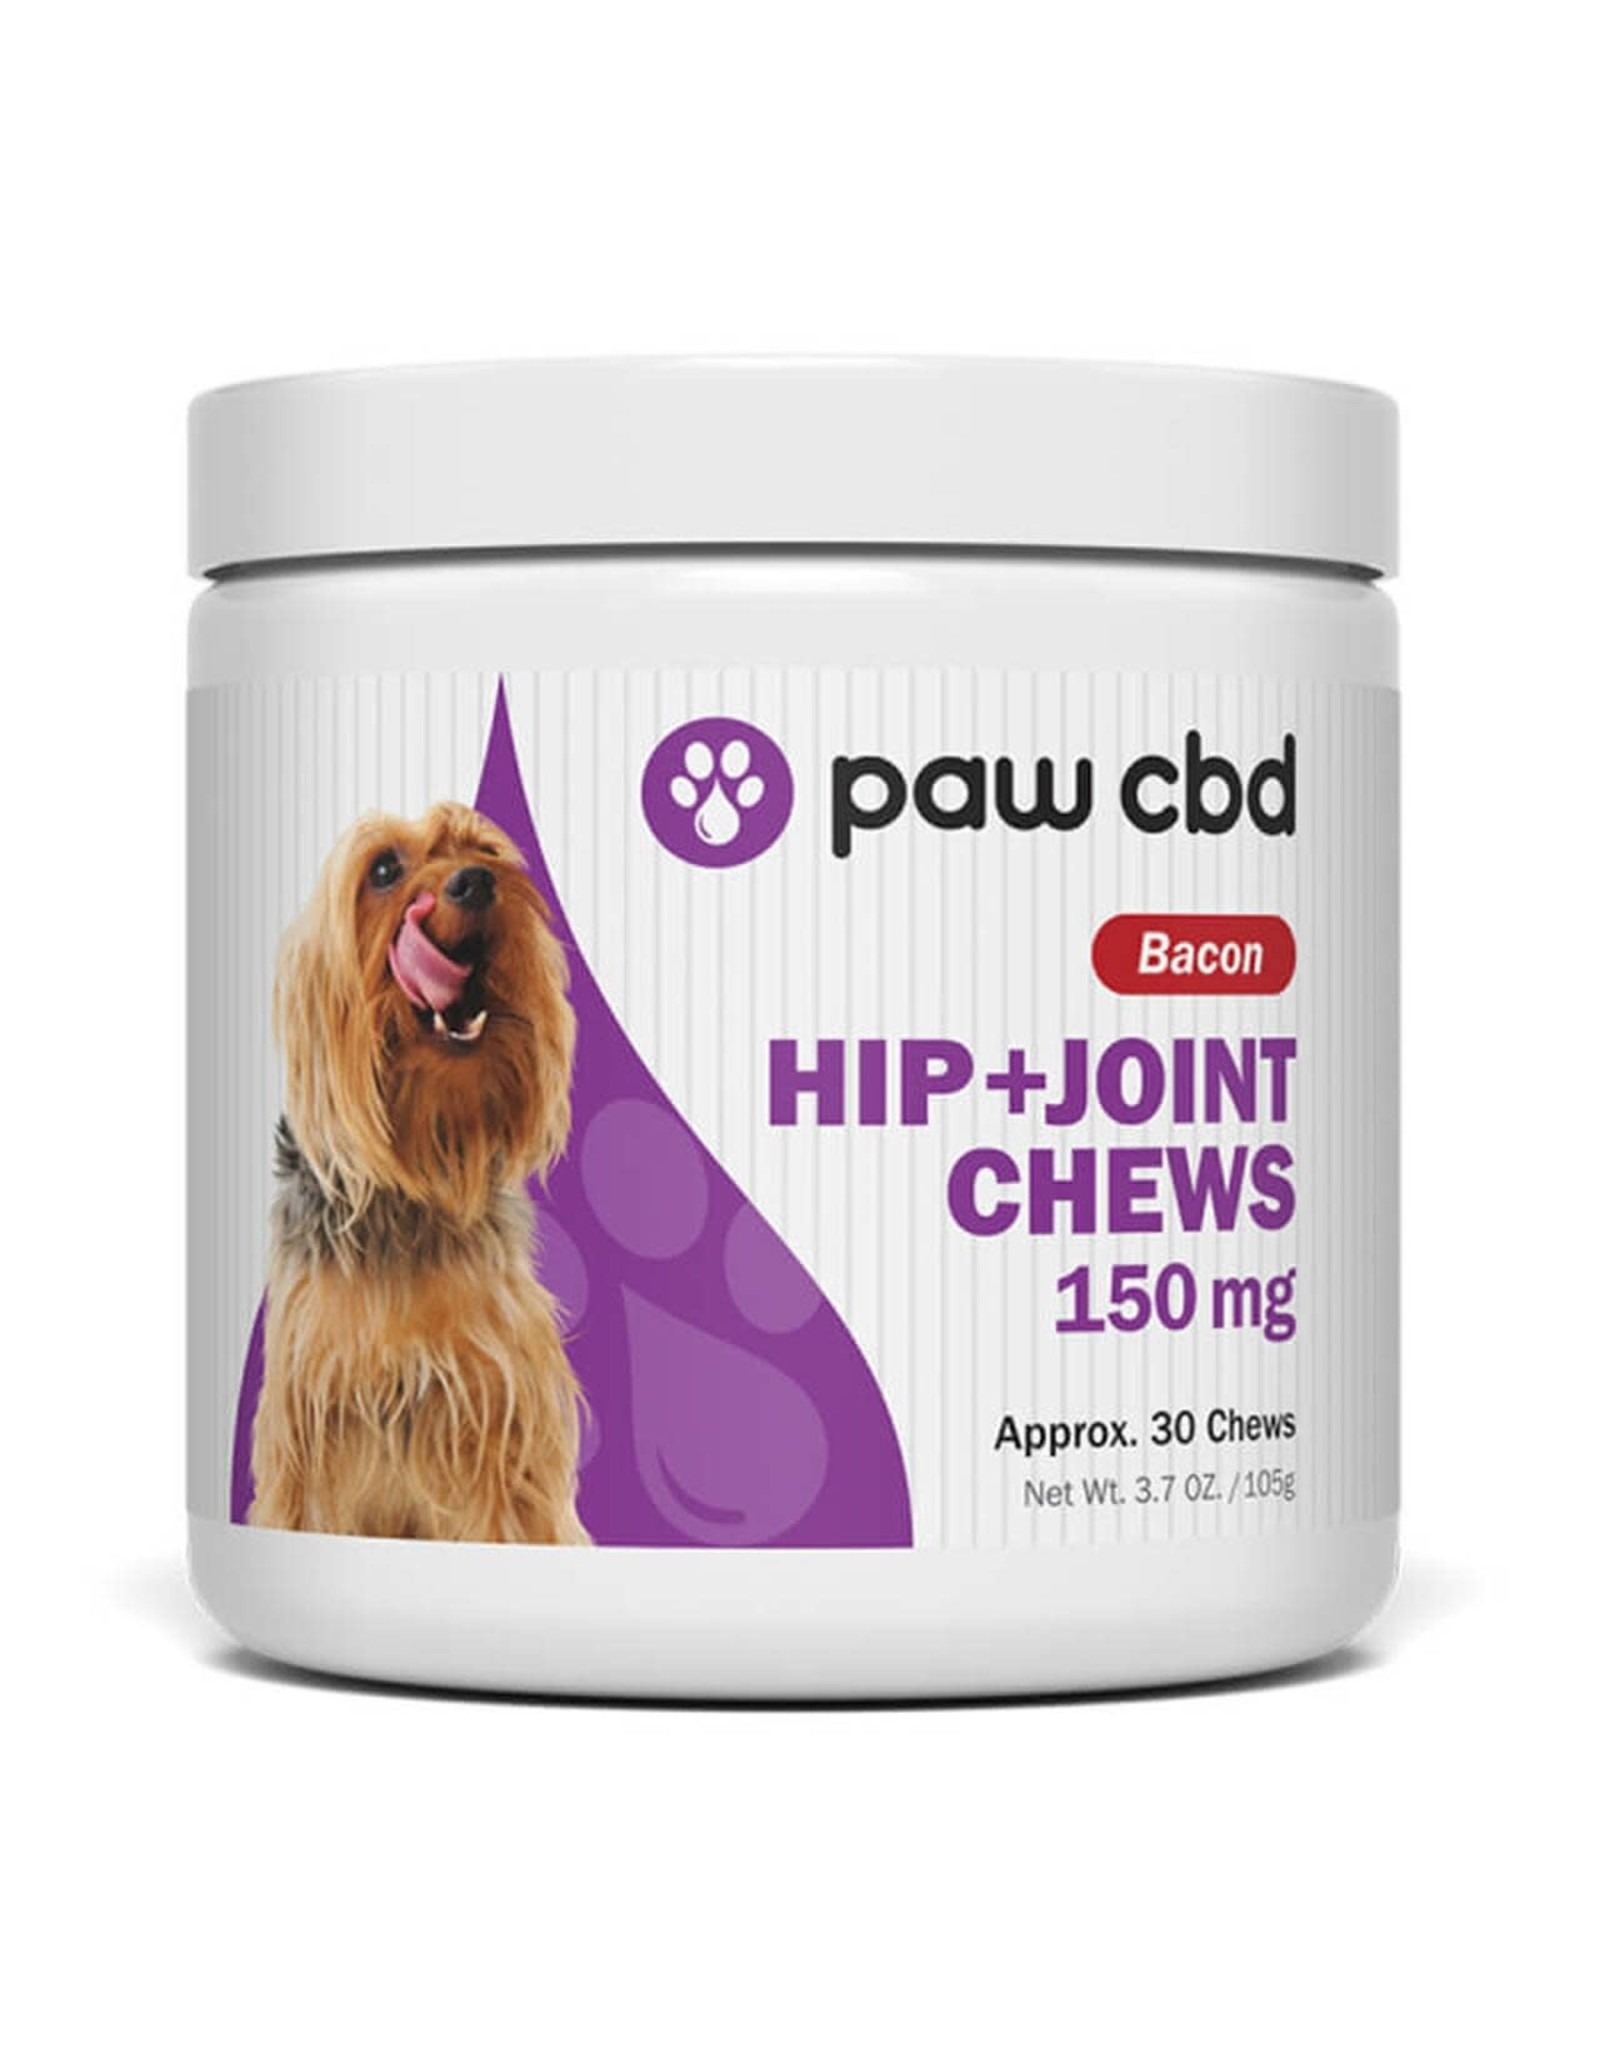 CBDMD CBDMD Pets Hip and Joint Chews 150mg 30ct